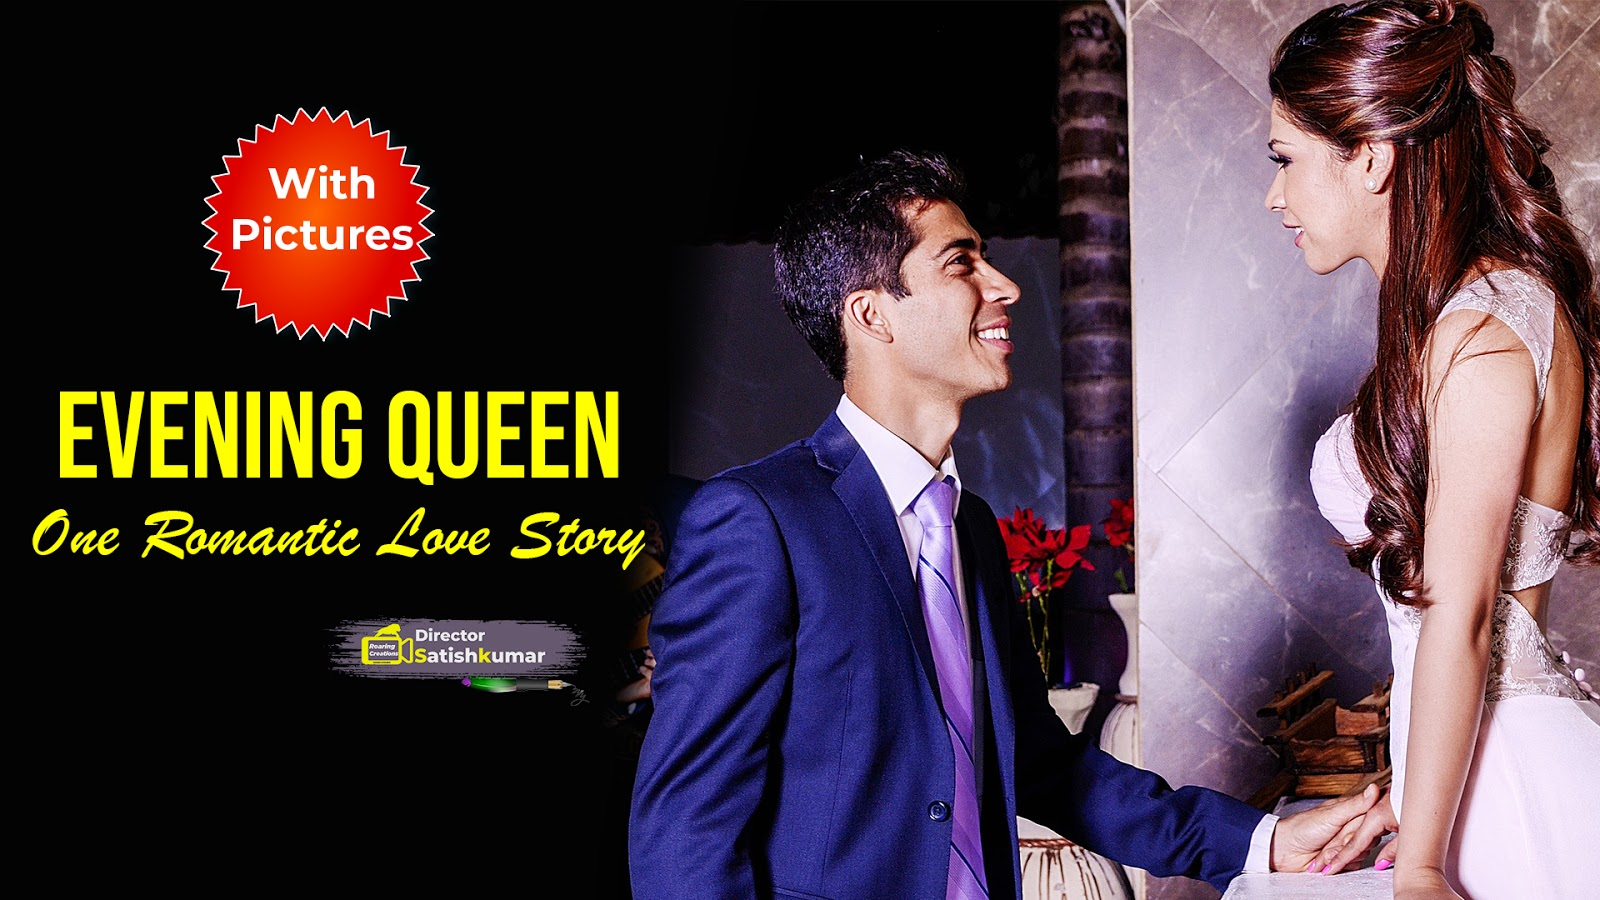 Evening Queen - One Romantic Love Story - Free E-Book Love Stories in English and in Hindi